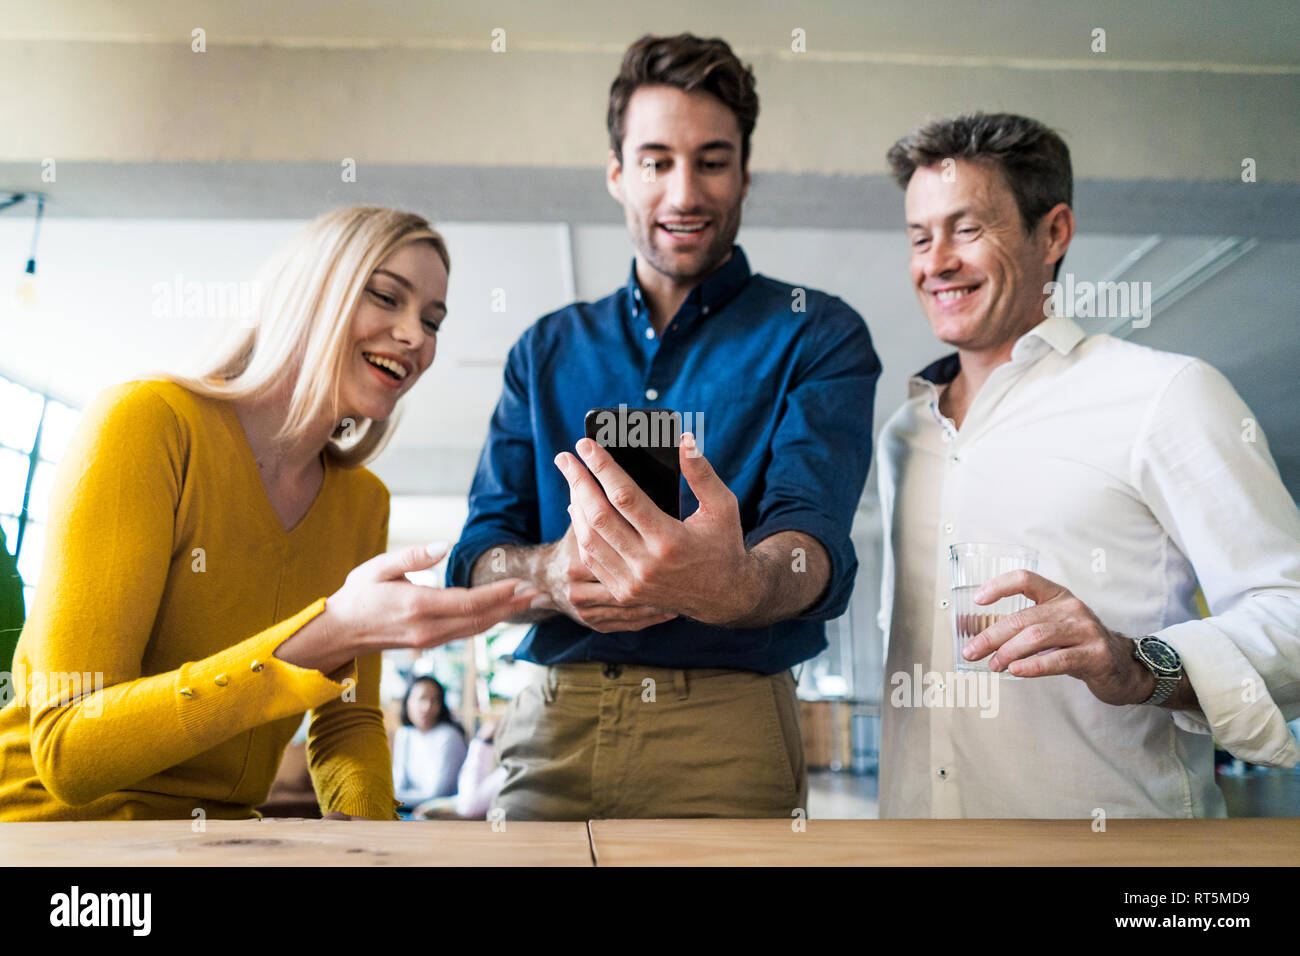 Happy business team looking at cell phone together in loft office - Stock Image